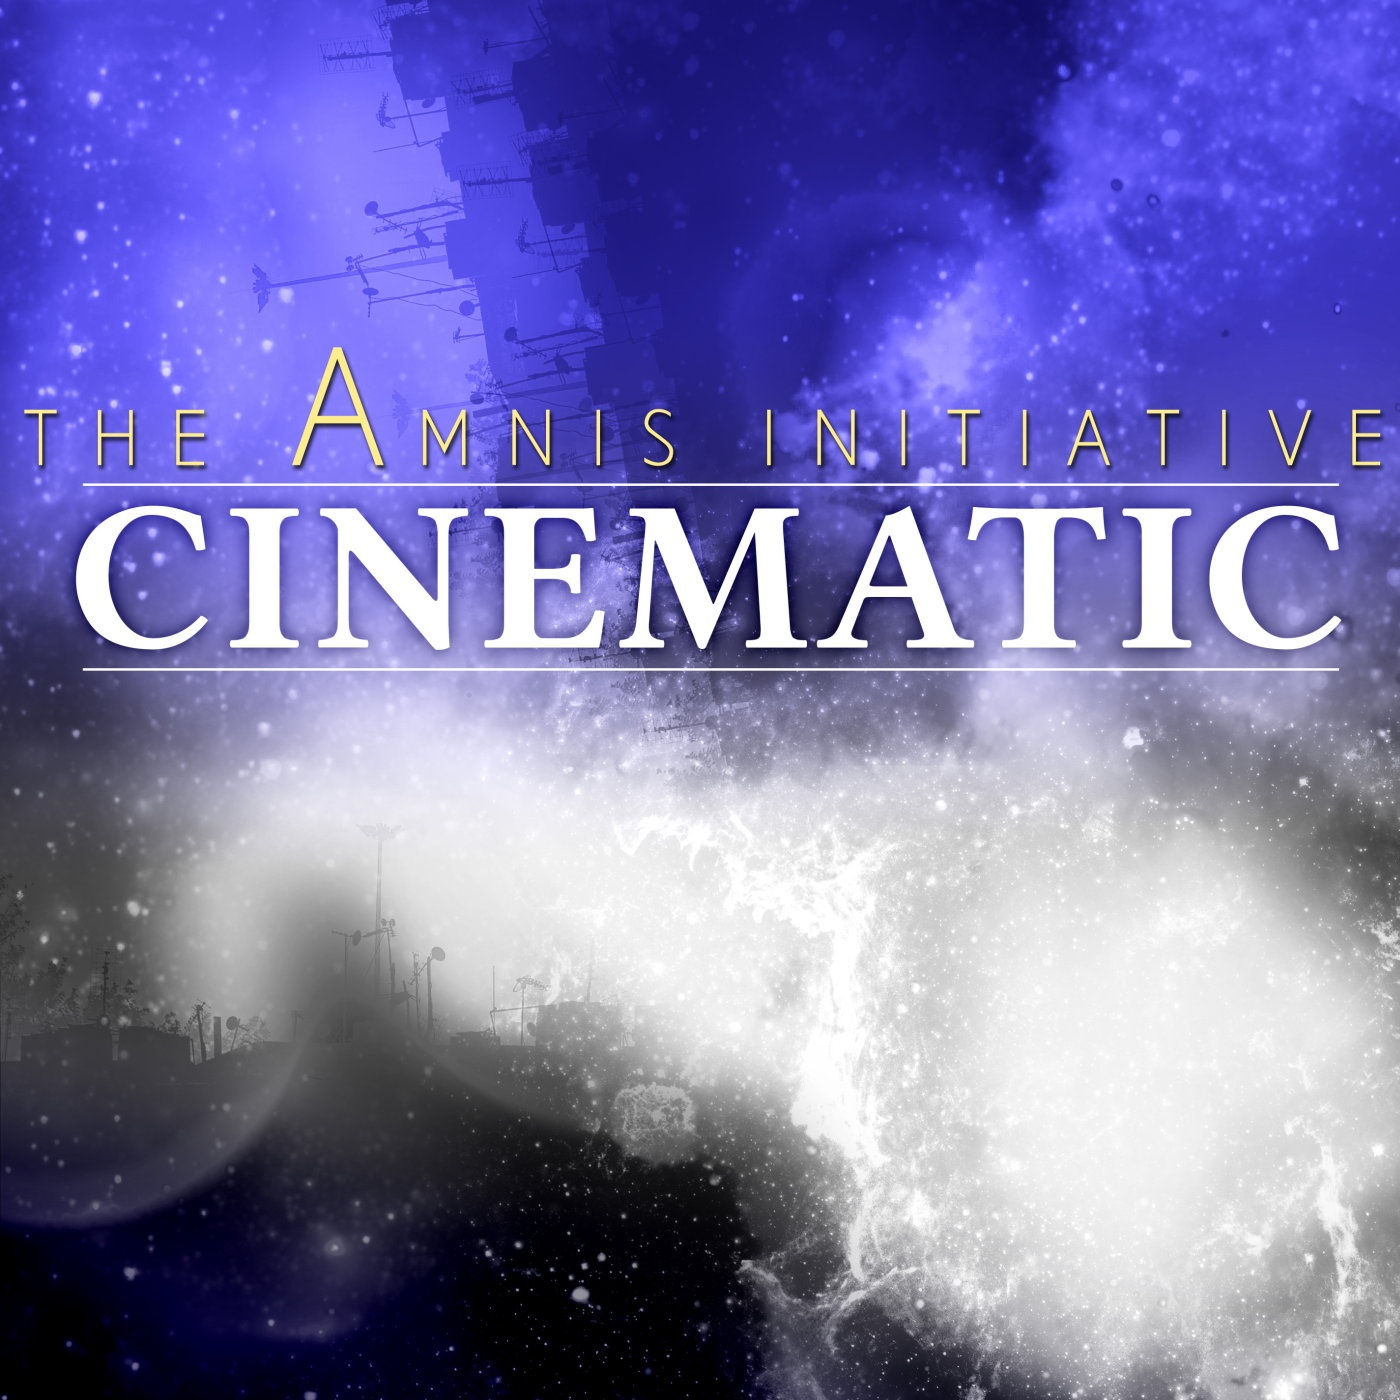 CINEMATIC - The Amnis Initiative (5.1 and stereo flac files)